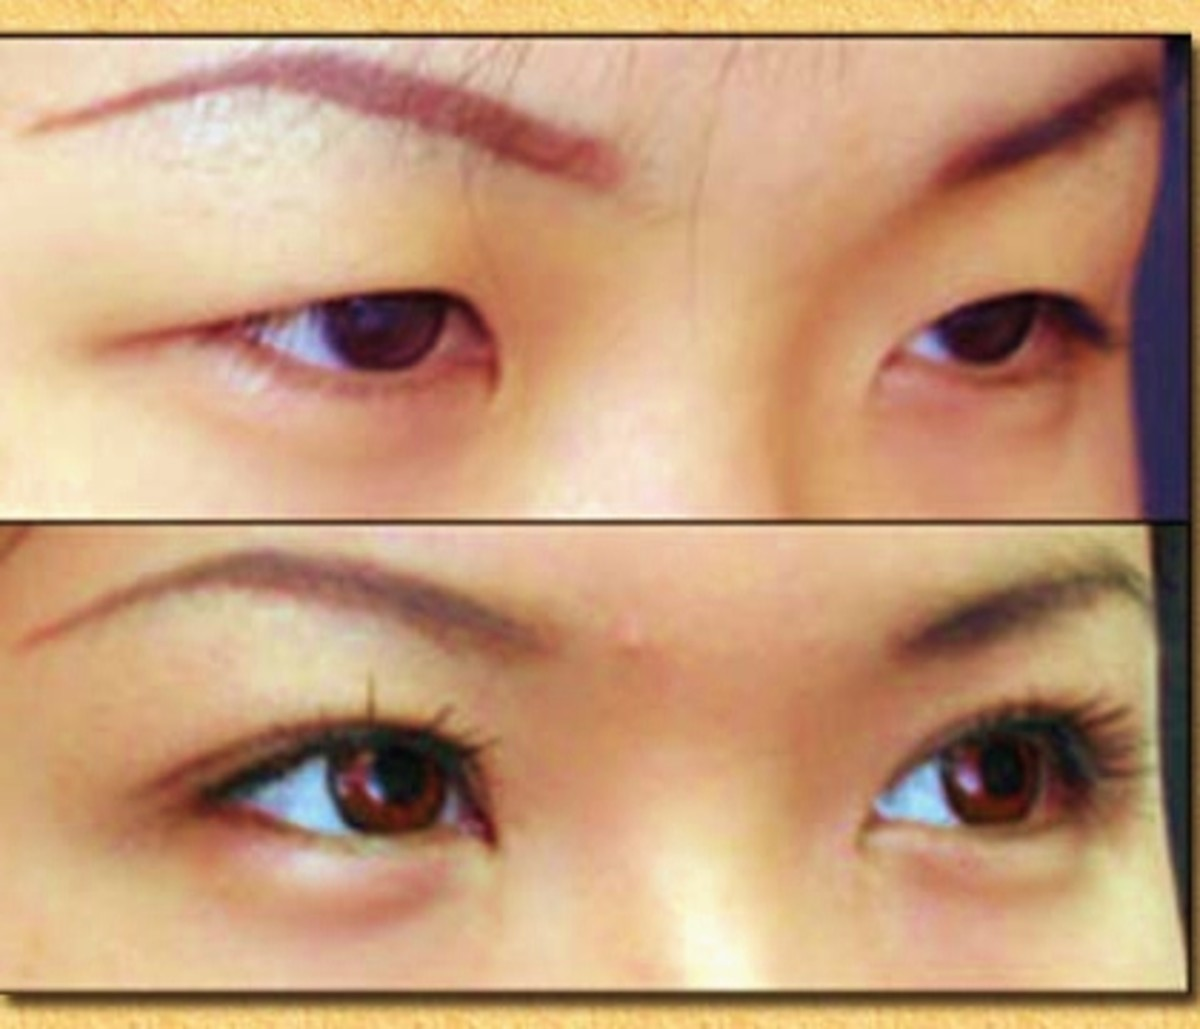 Asian Eyelid Surgery: Before and After Pictures and Cost of Procedure